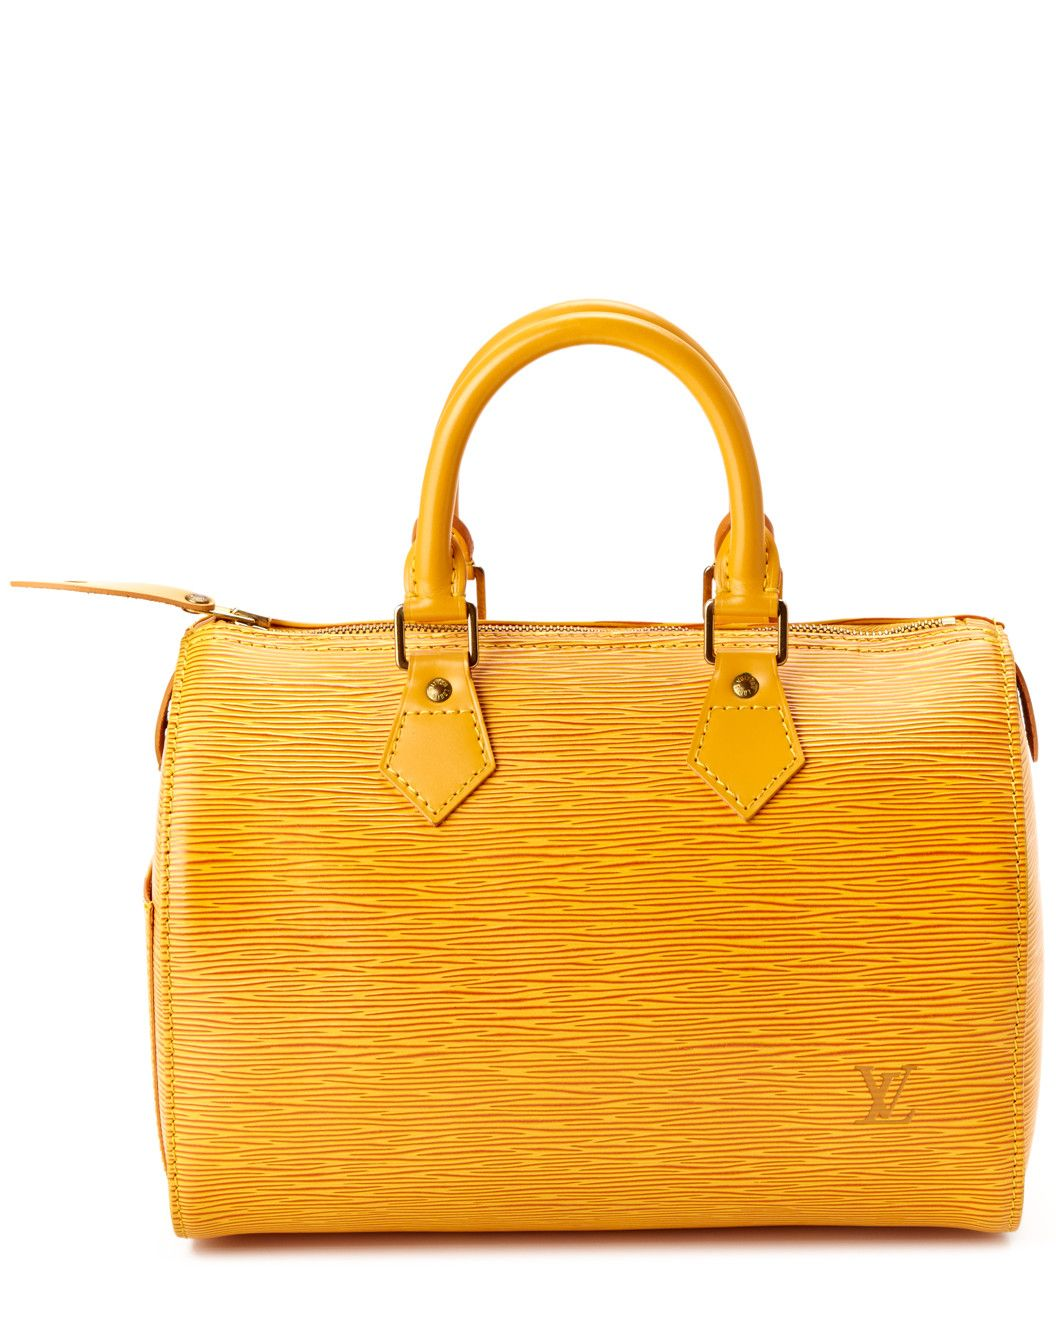 Spotted this Louis Vuitton Tassili Yellow Epi Leather Speedy 25 on Rue La La. Shop (quickly!).